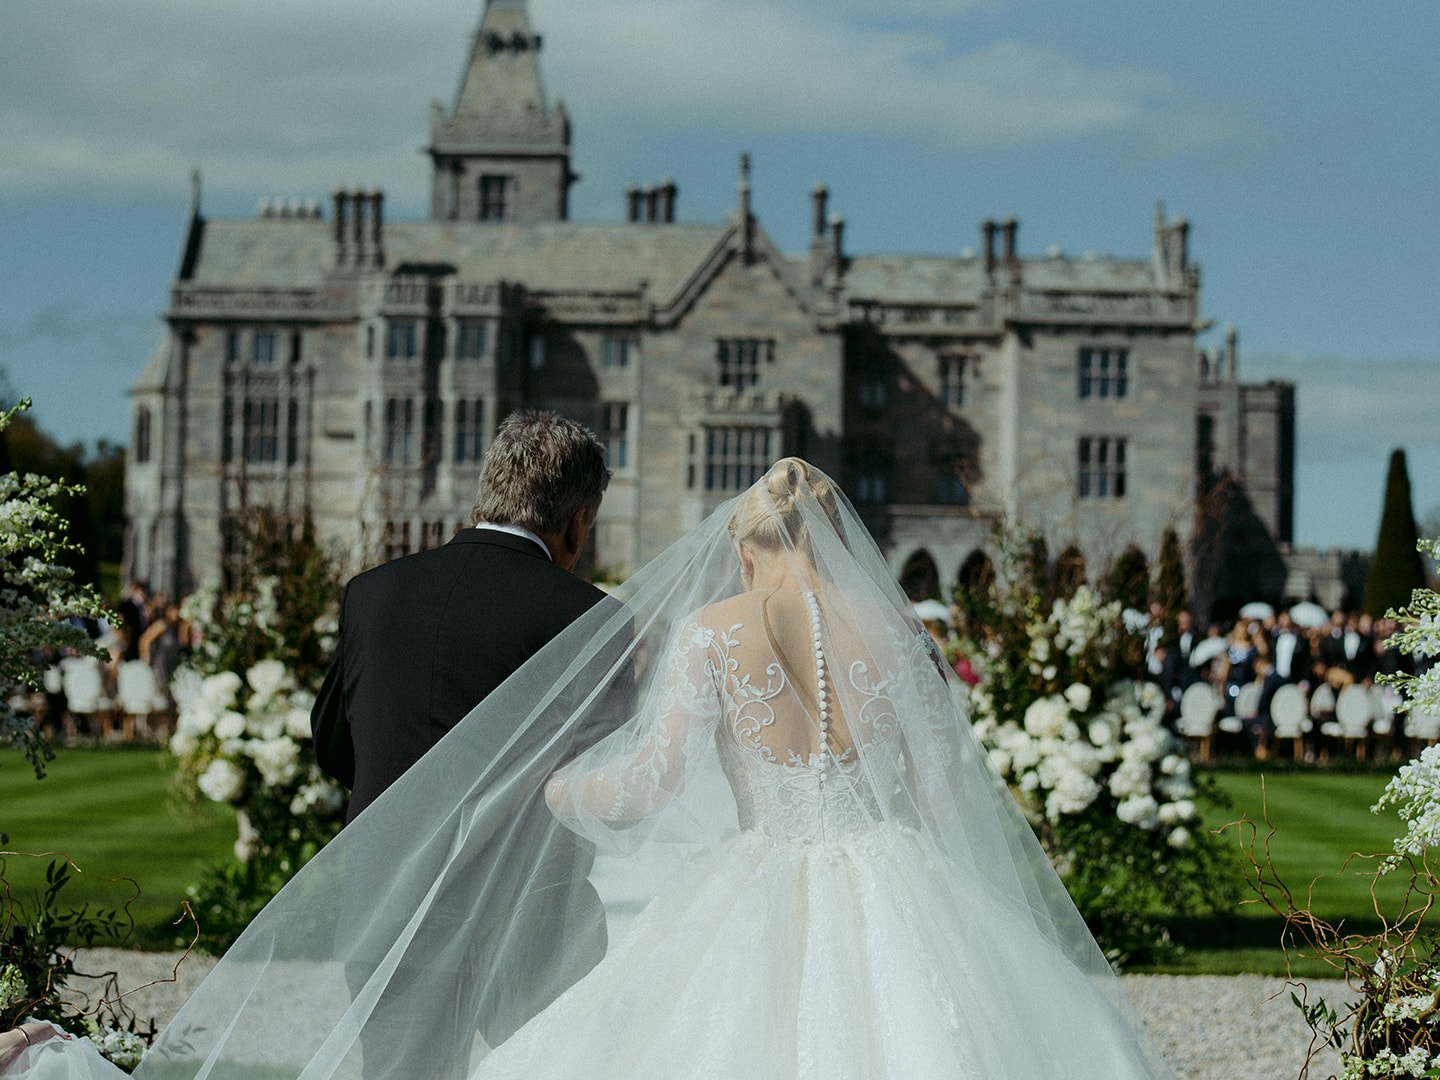 Destination Weddings Ireland, Event Planner in Ireland, Event Management company, Destination wedding, Ashford Castle